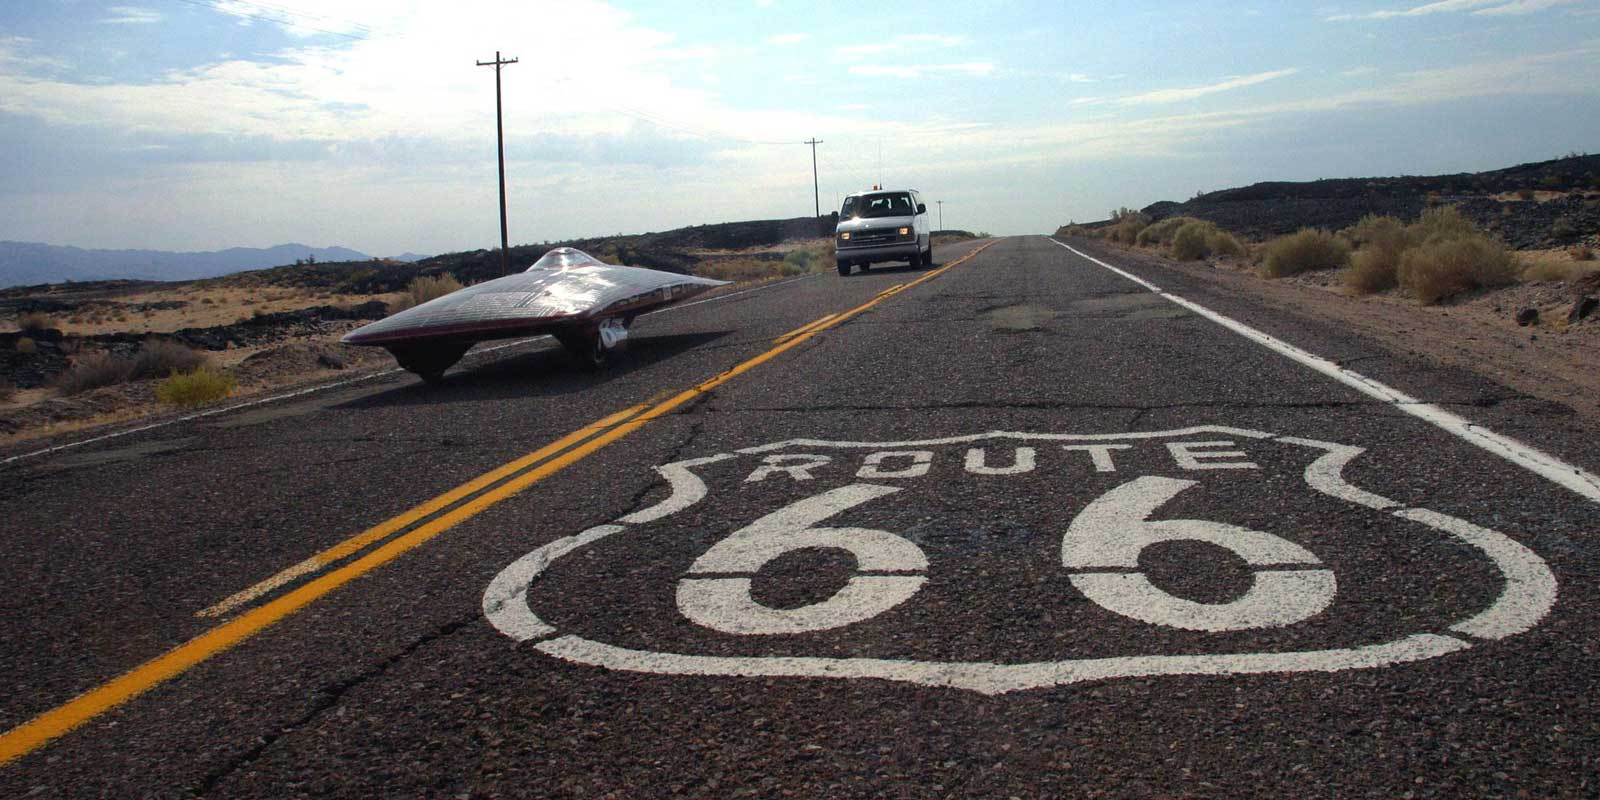 An oddly shaped solar vehicle drives down Route 66, which is painted on the pavement.